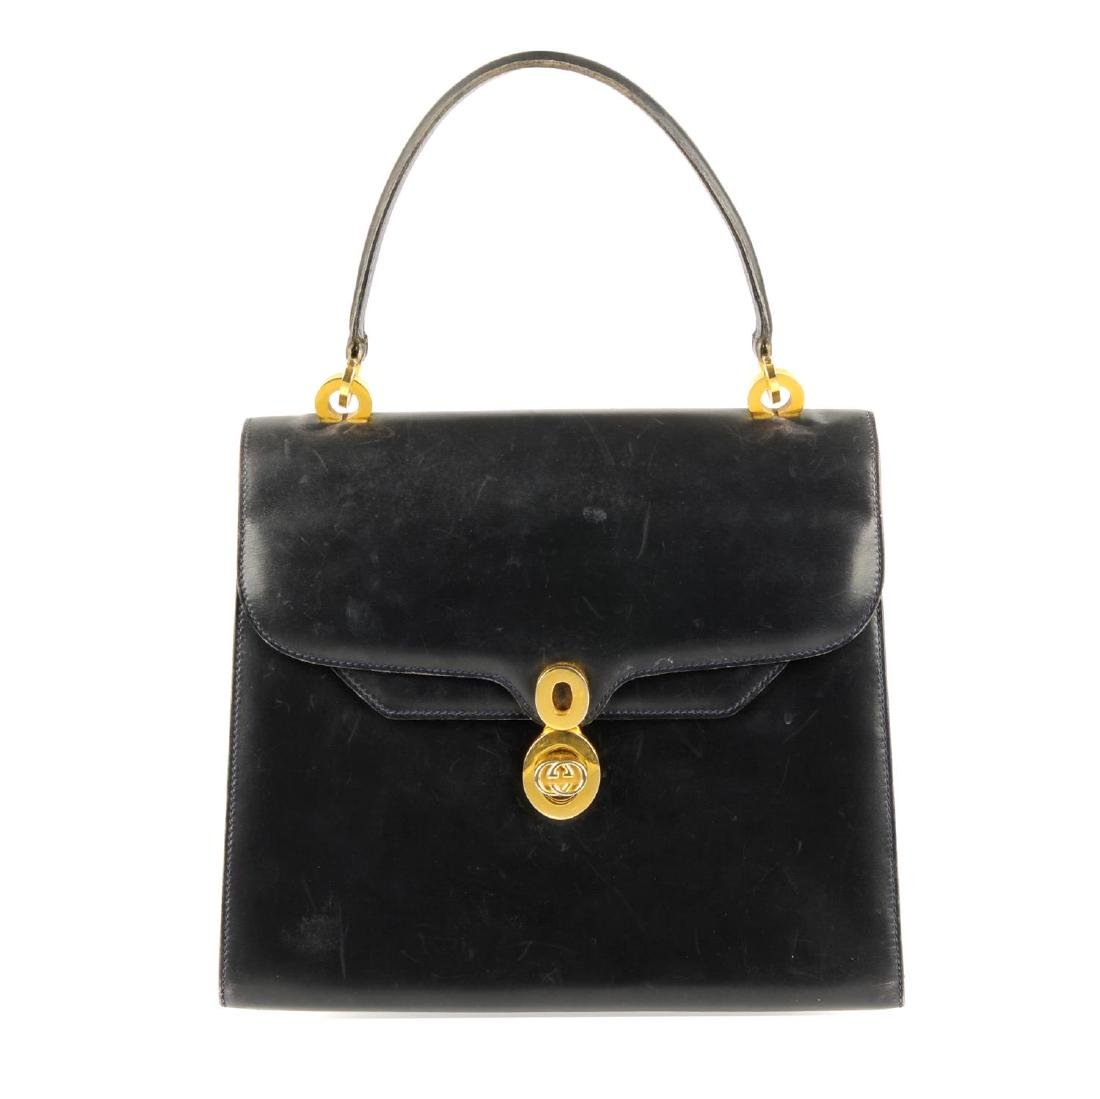 GUCCI - a vintage leather box handbag. Designed with a